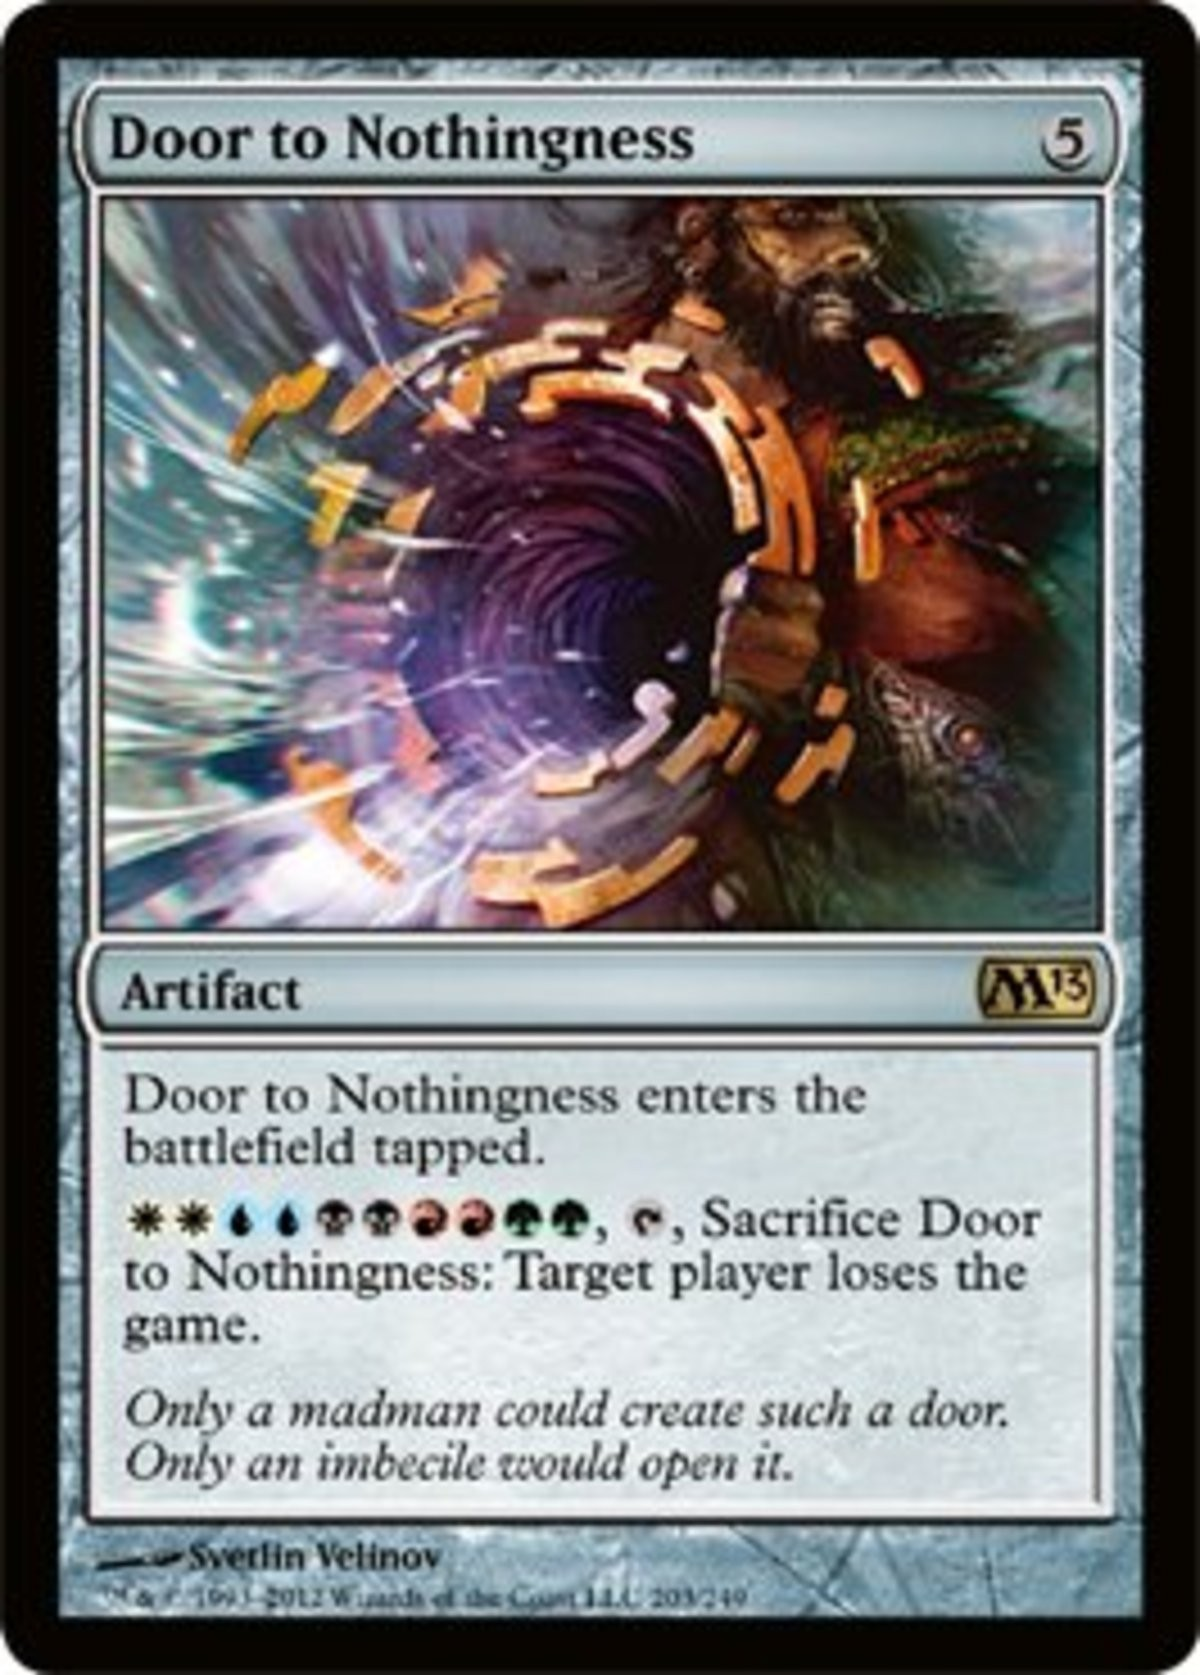 Need advise, fj. Folks, I havent played MTG for like 15 years, dropped back in the days white/black faction only started to appear. Used to play blue spell deck